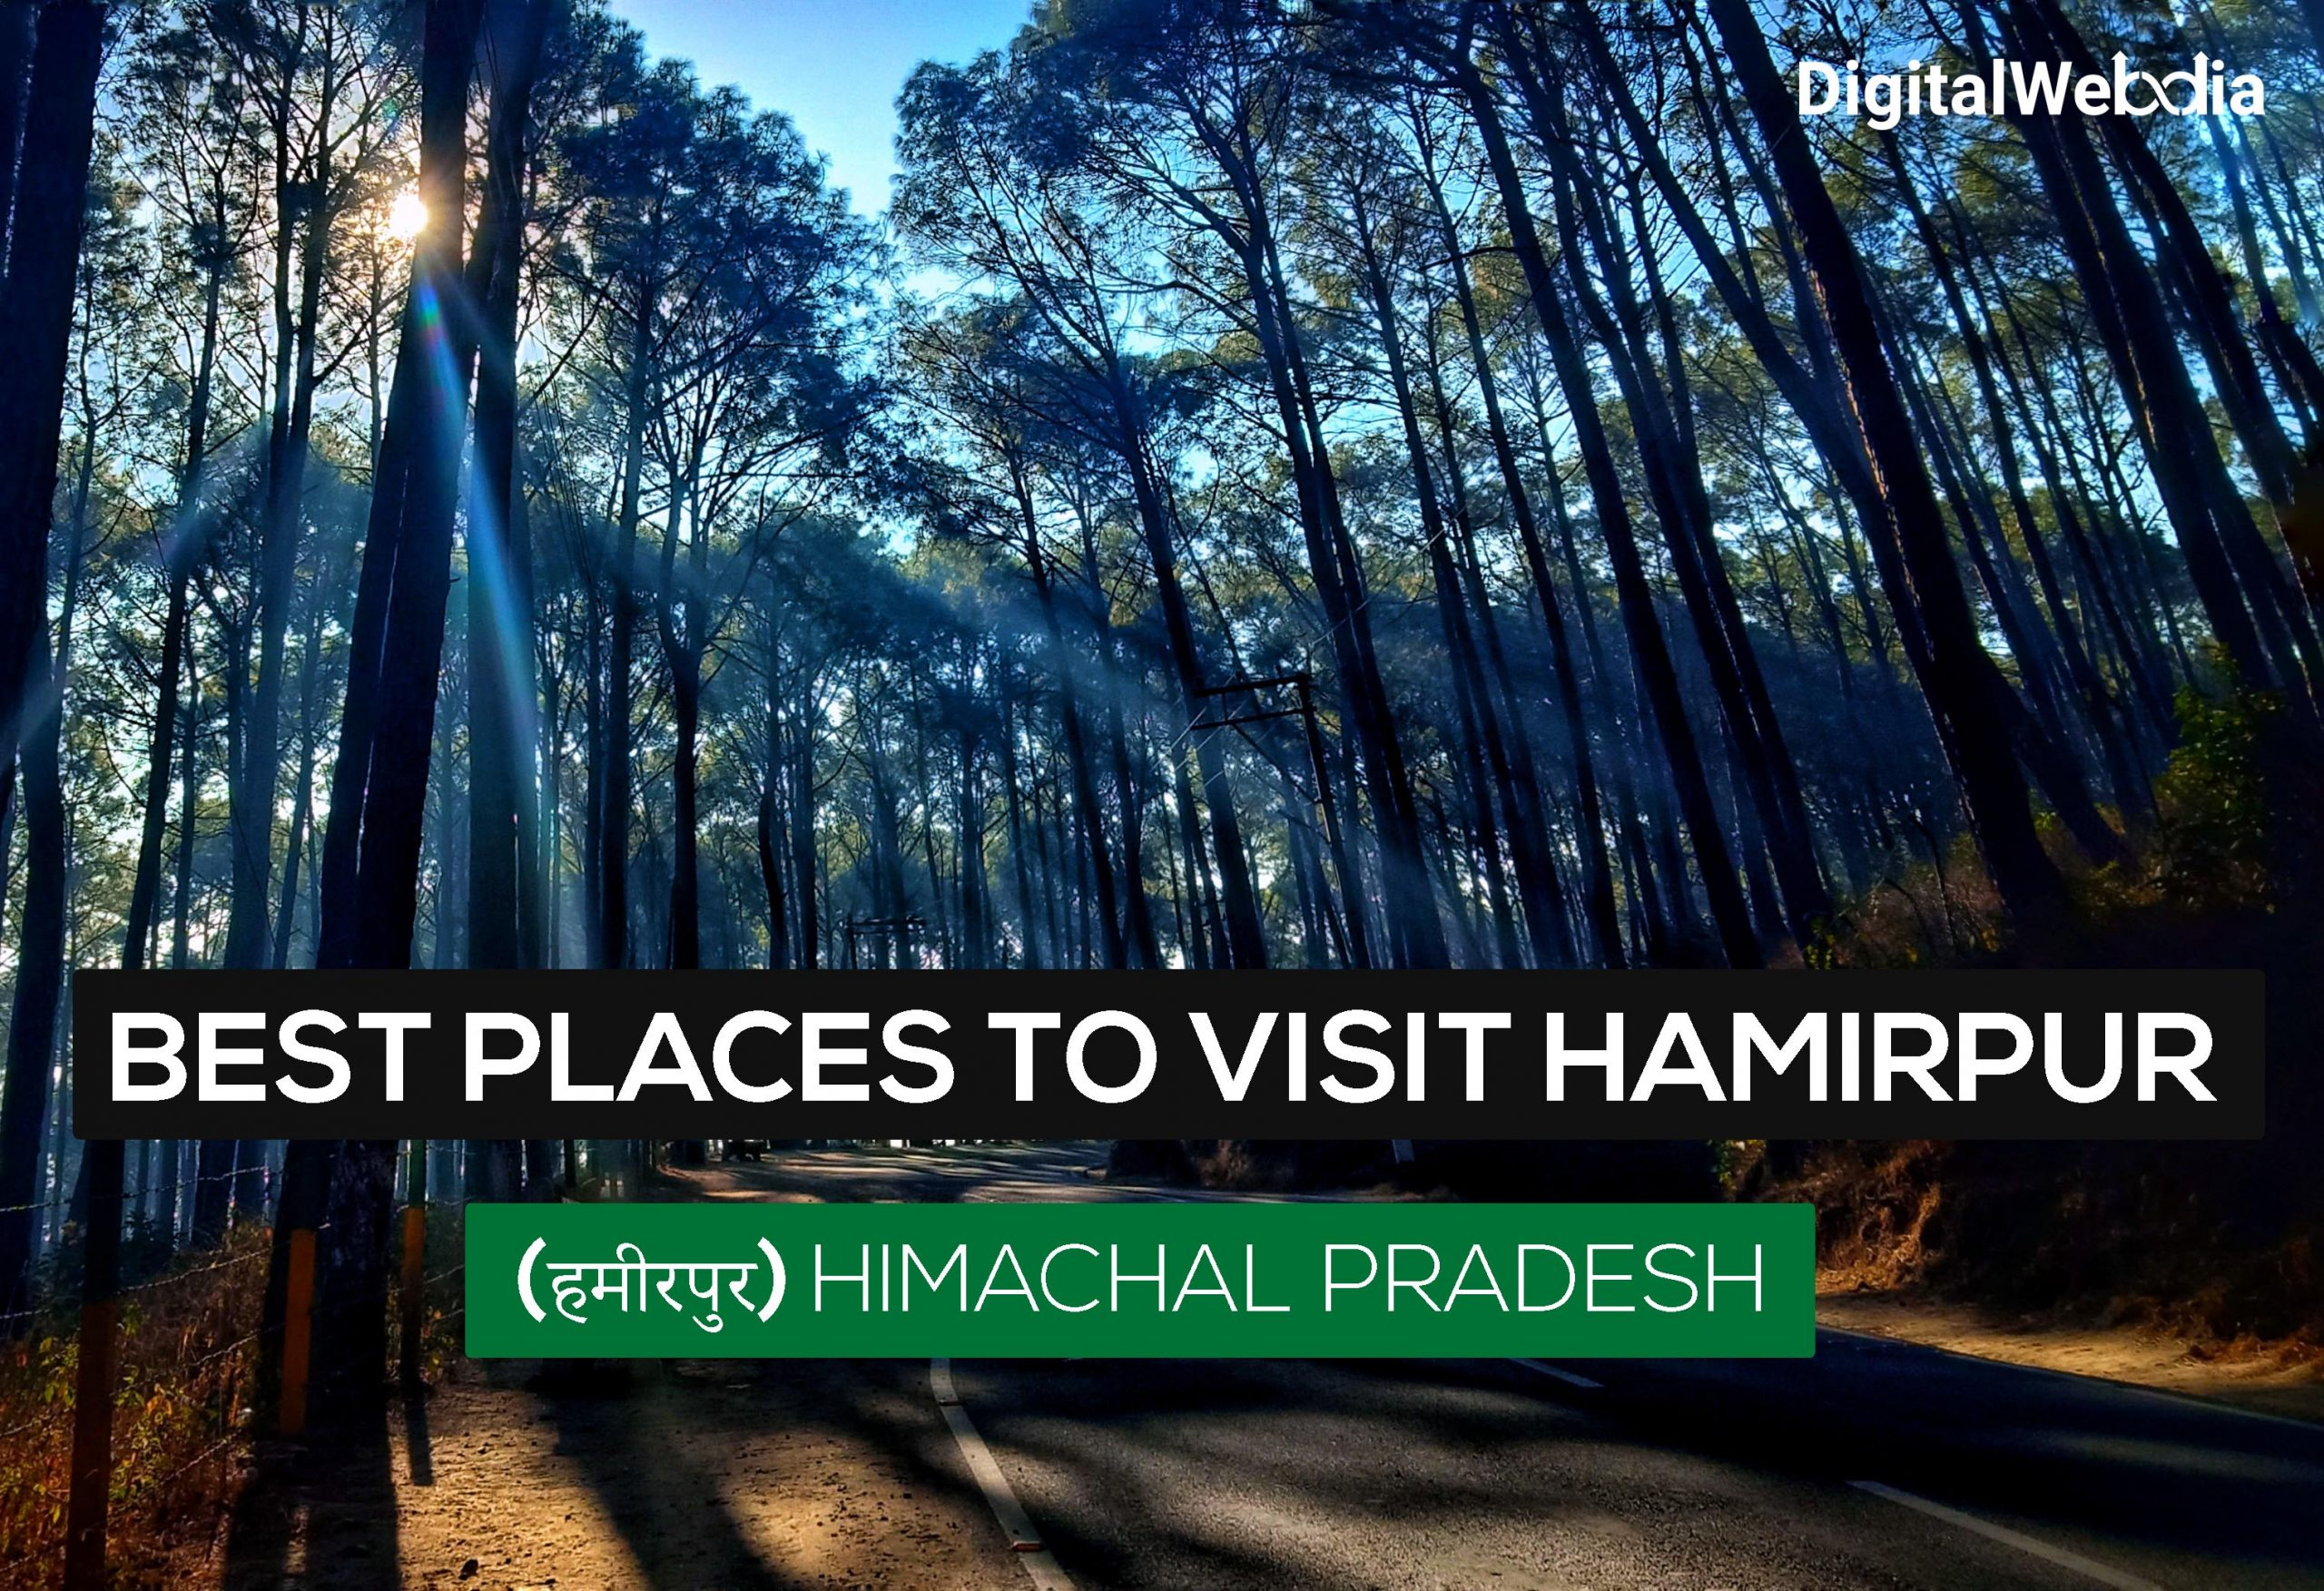 Best Places to Visit Hamirpur (हमीरपुर) Himachal Pradesh